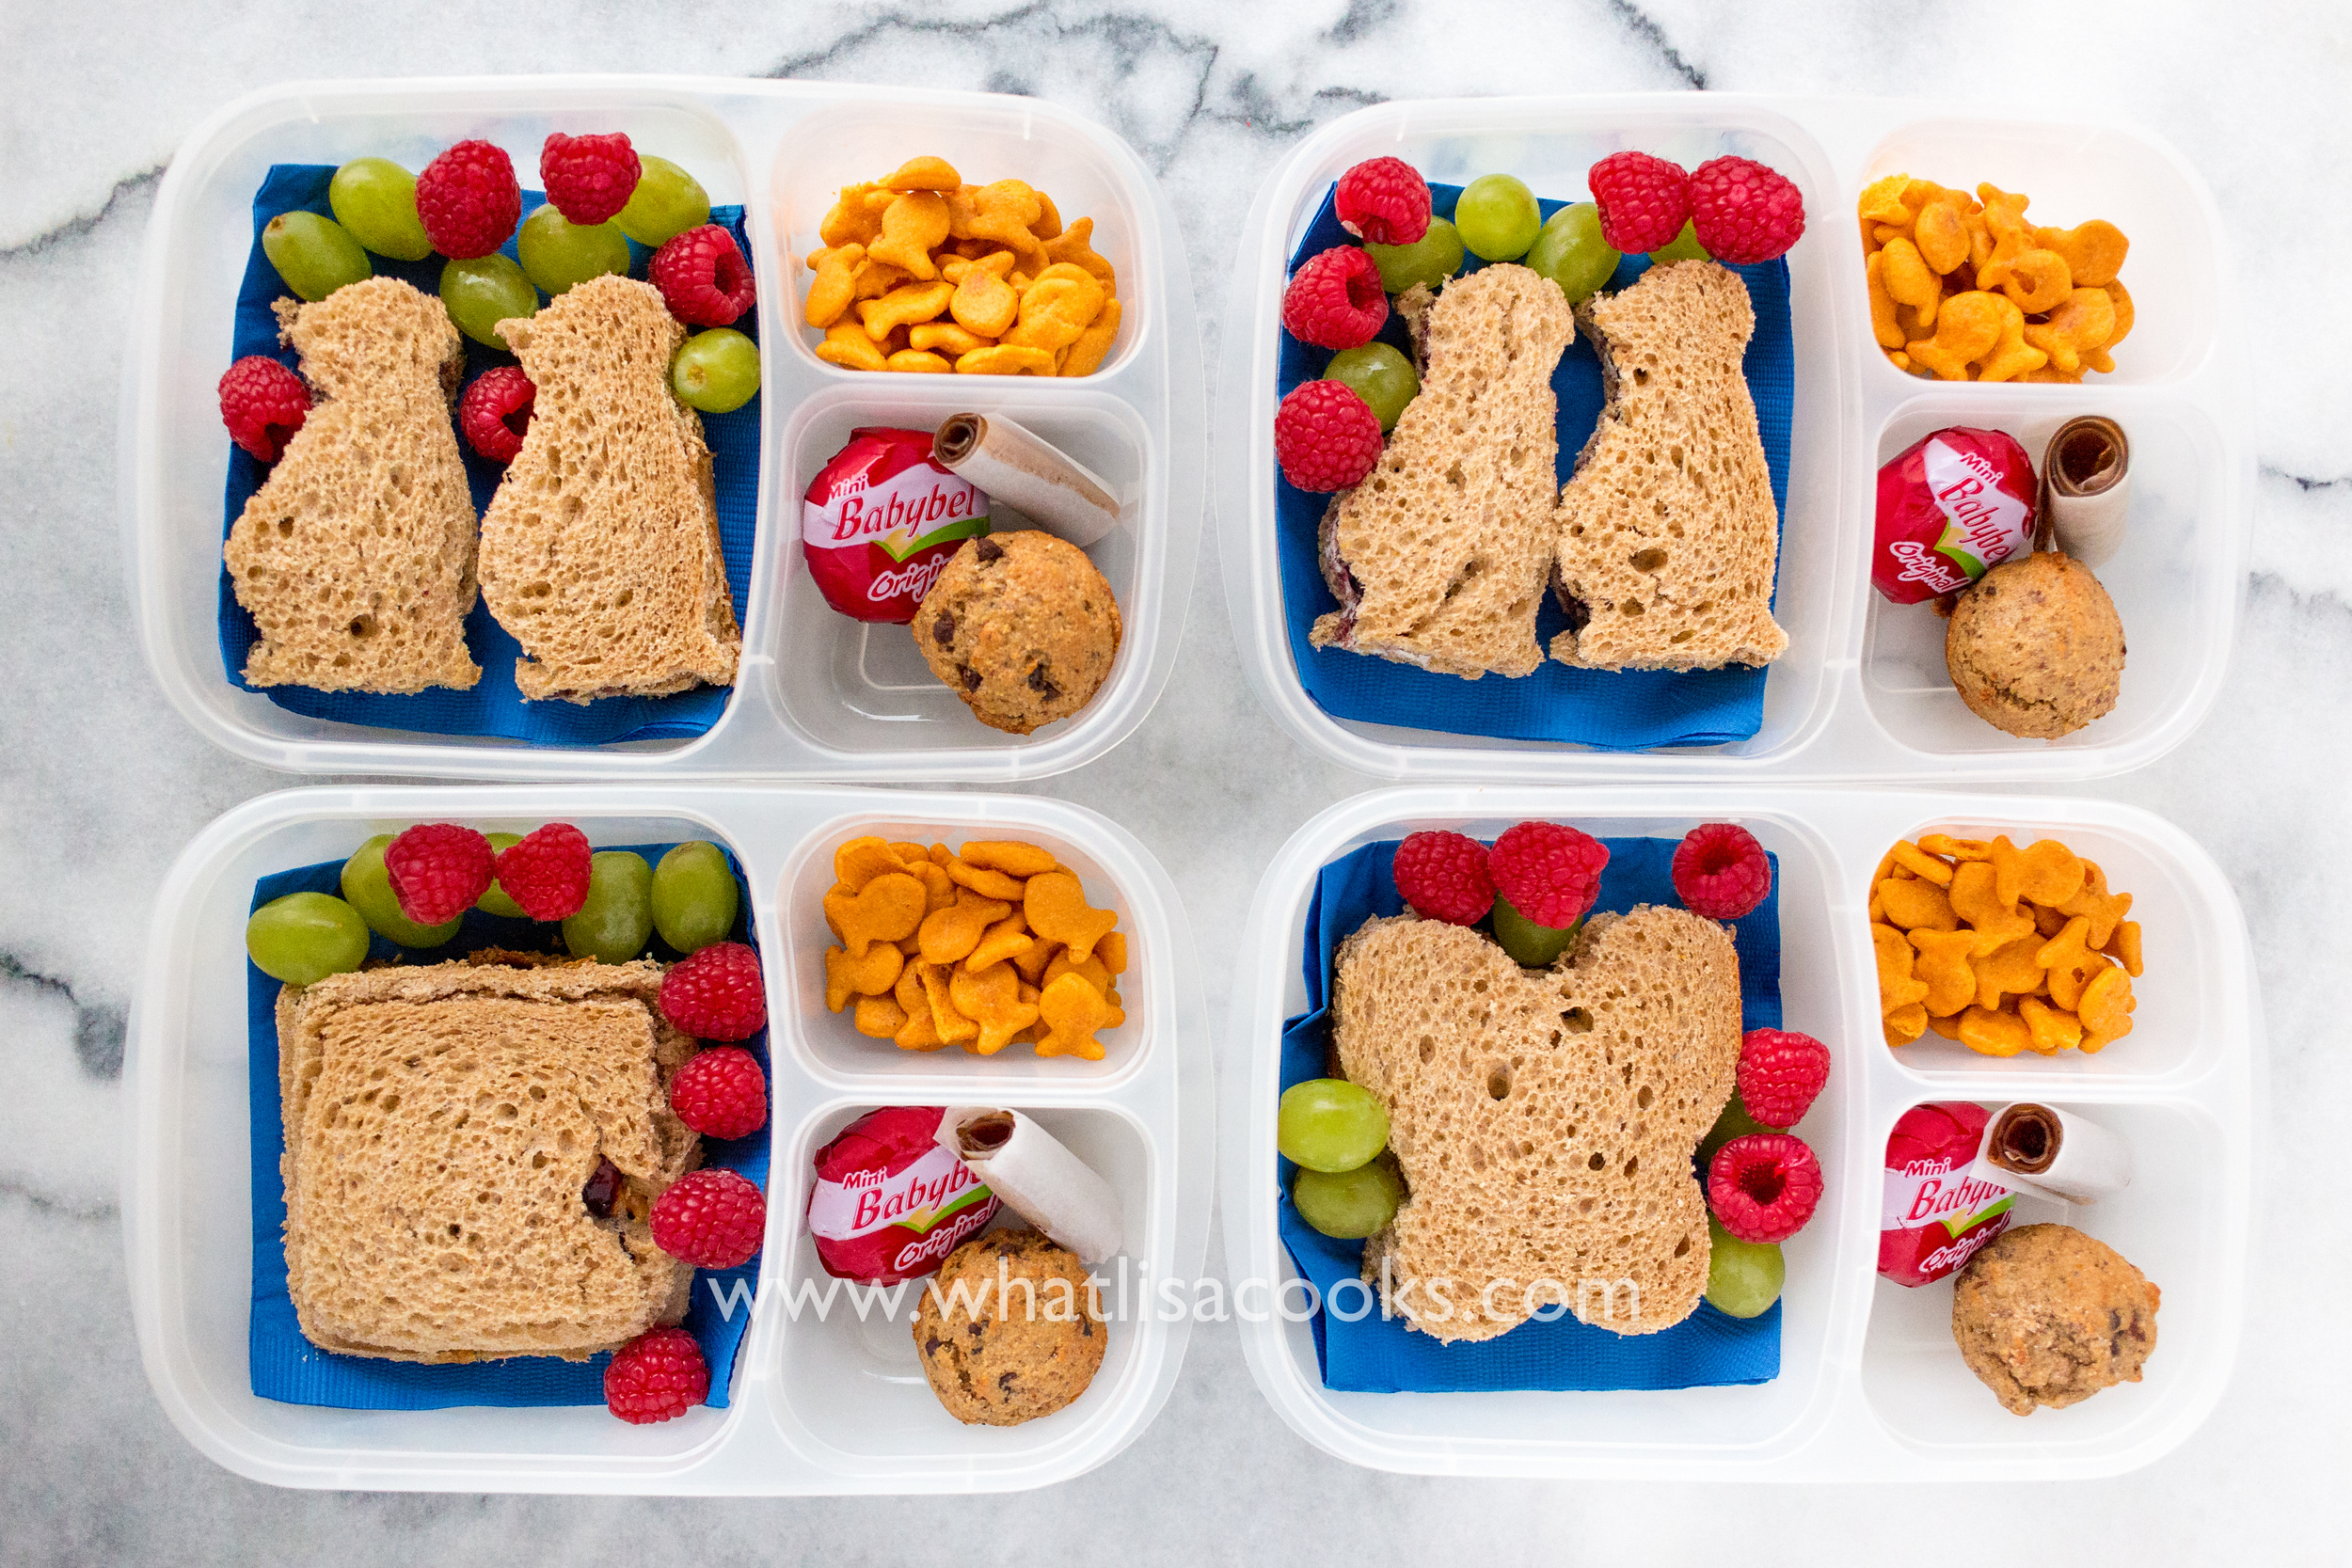 Sandwiches for lunch - from WhatLisaCooks.com